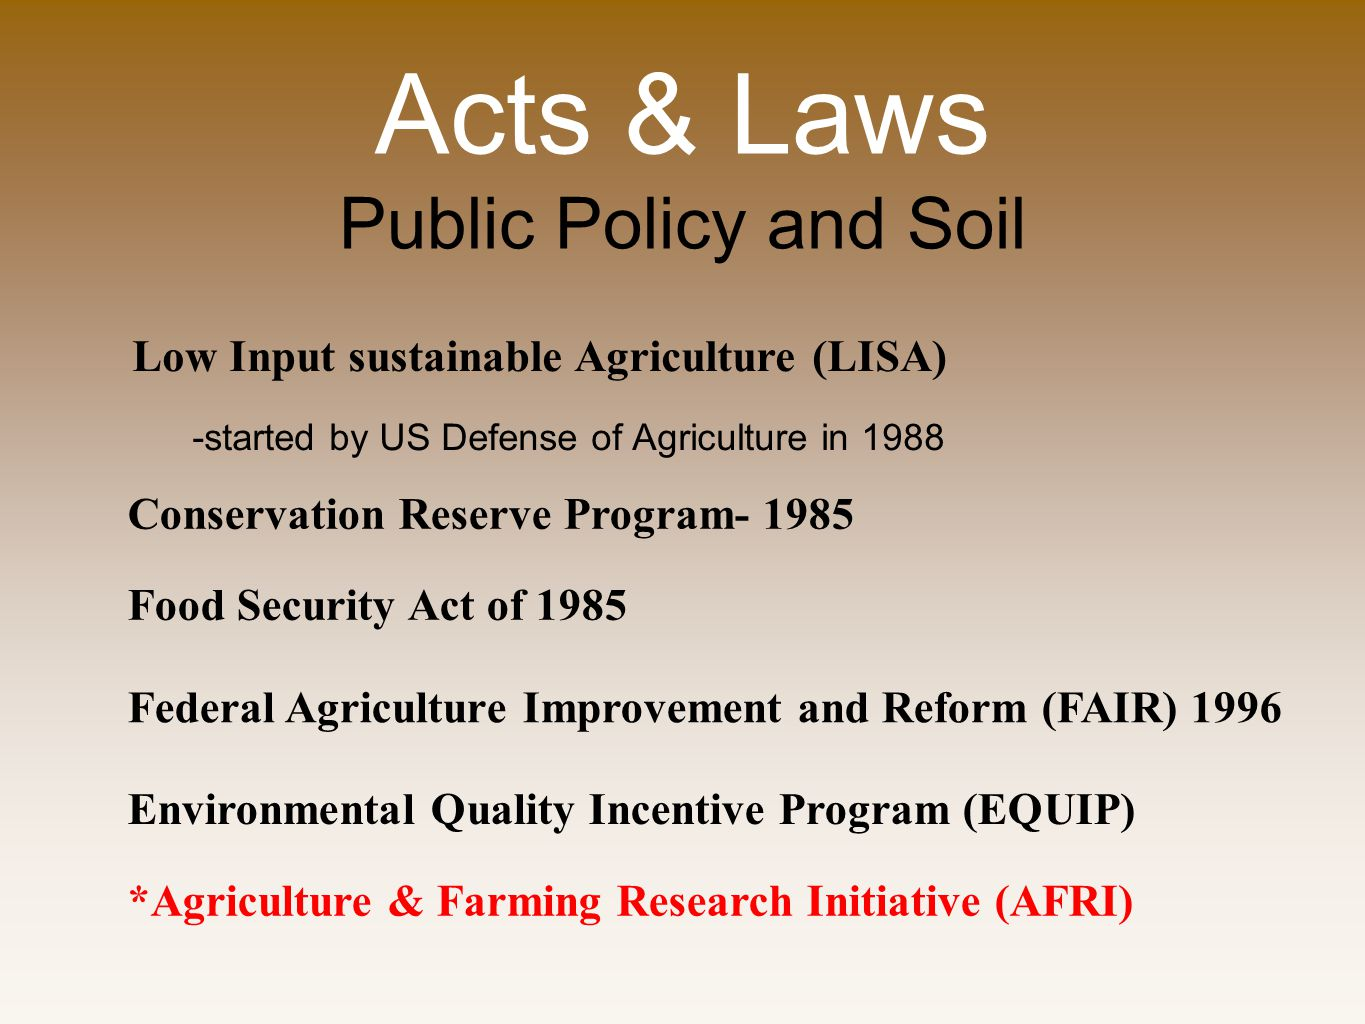 Acts & Laws Public Policy and Soil